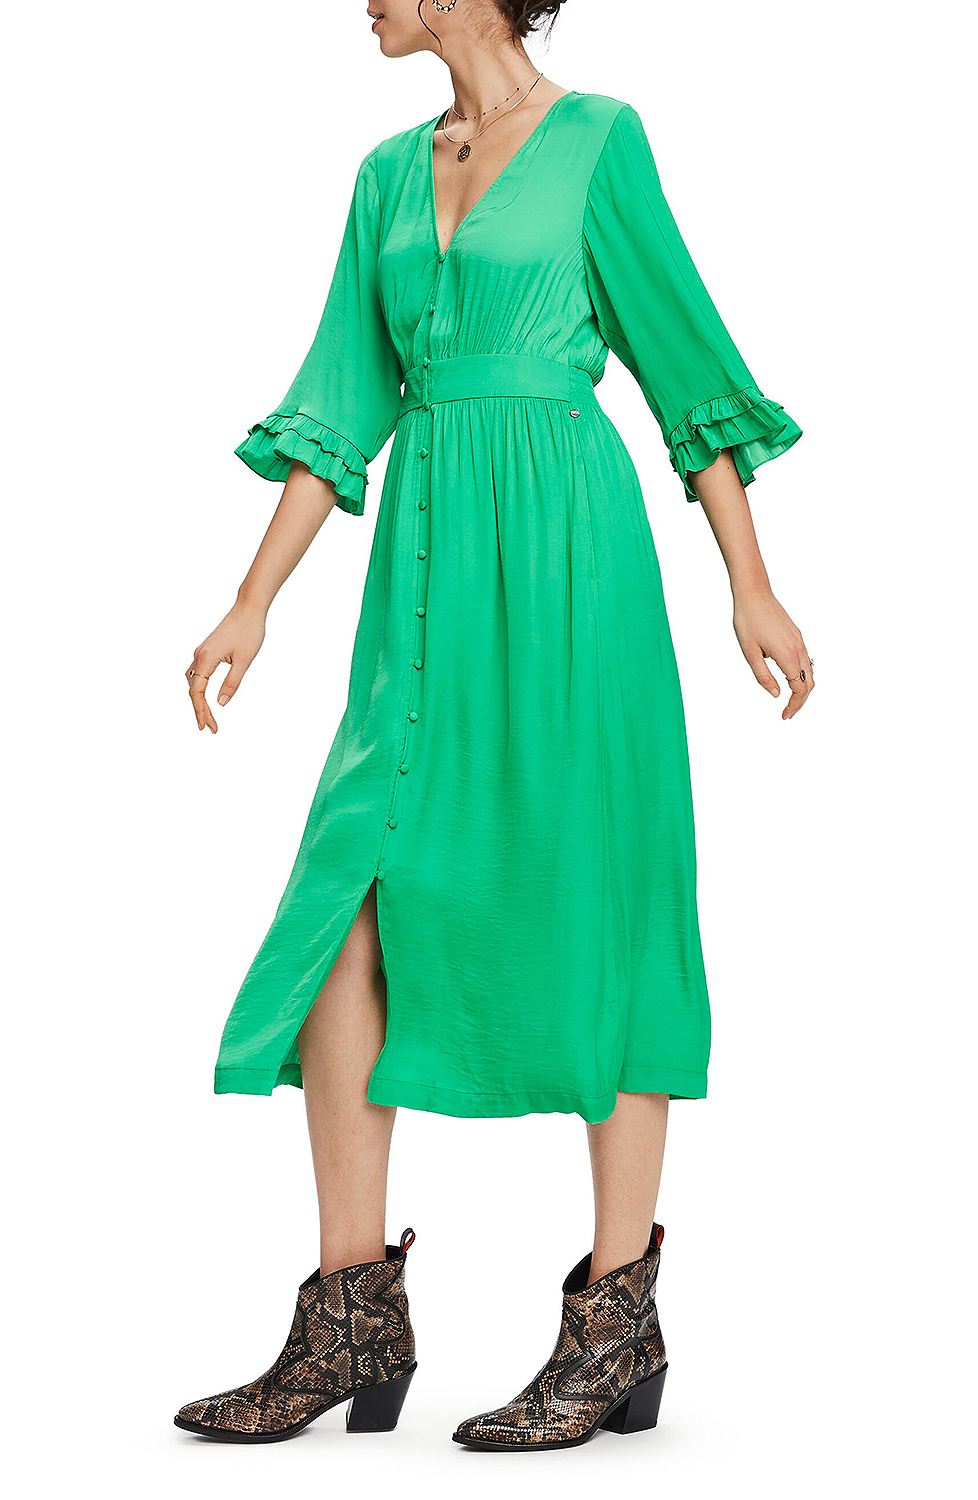 green button dress from nordstrom